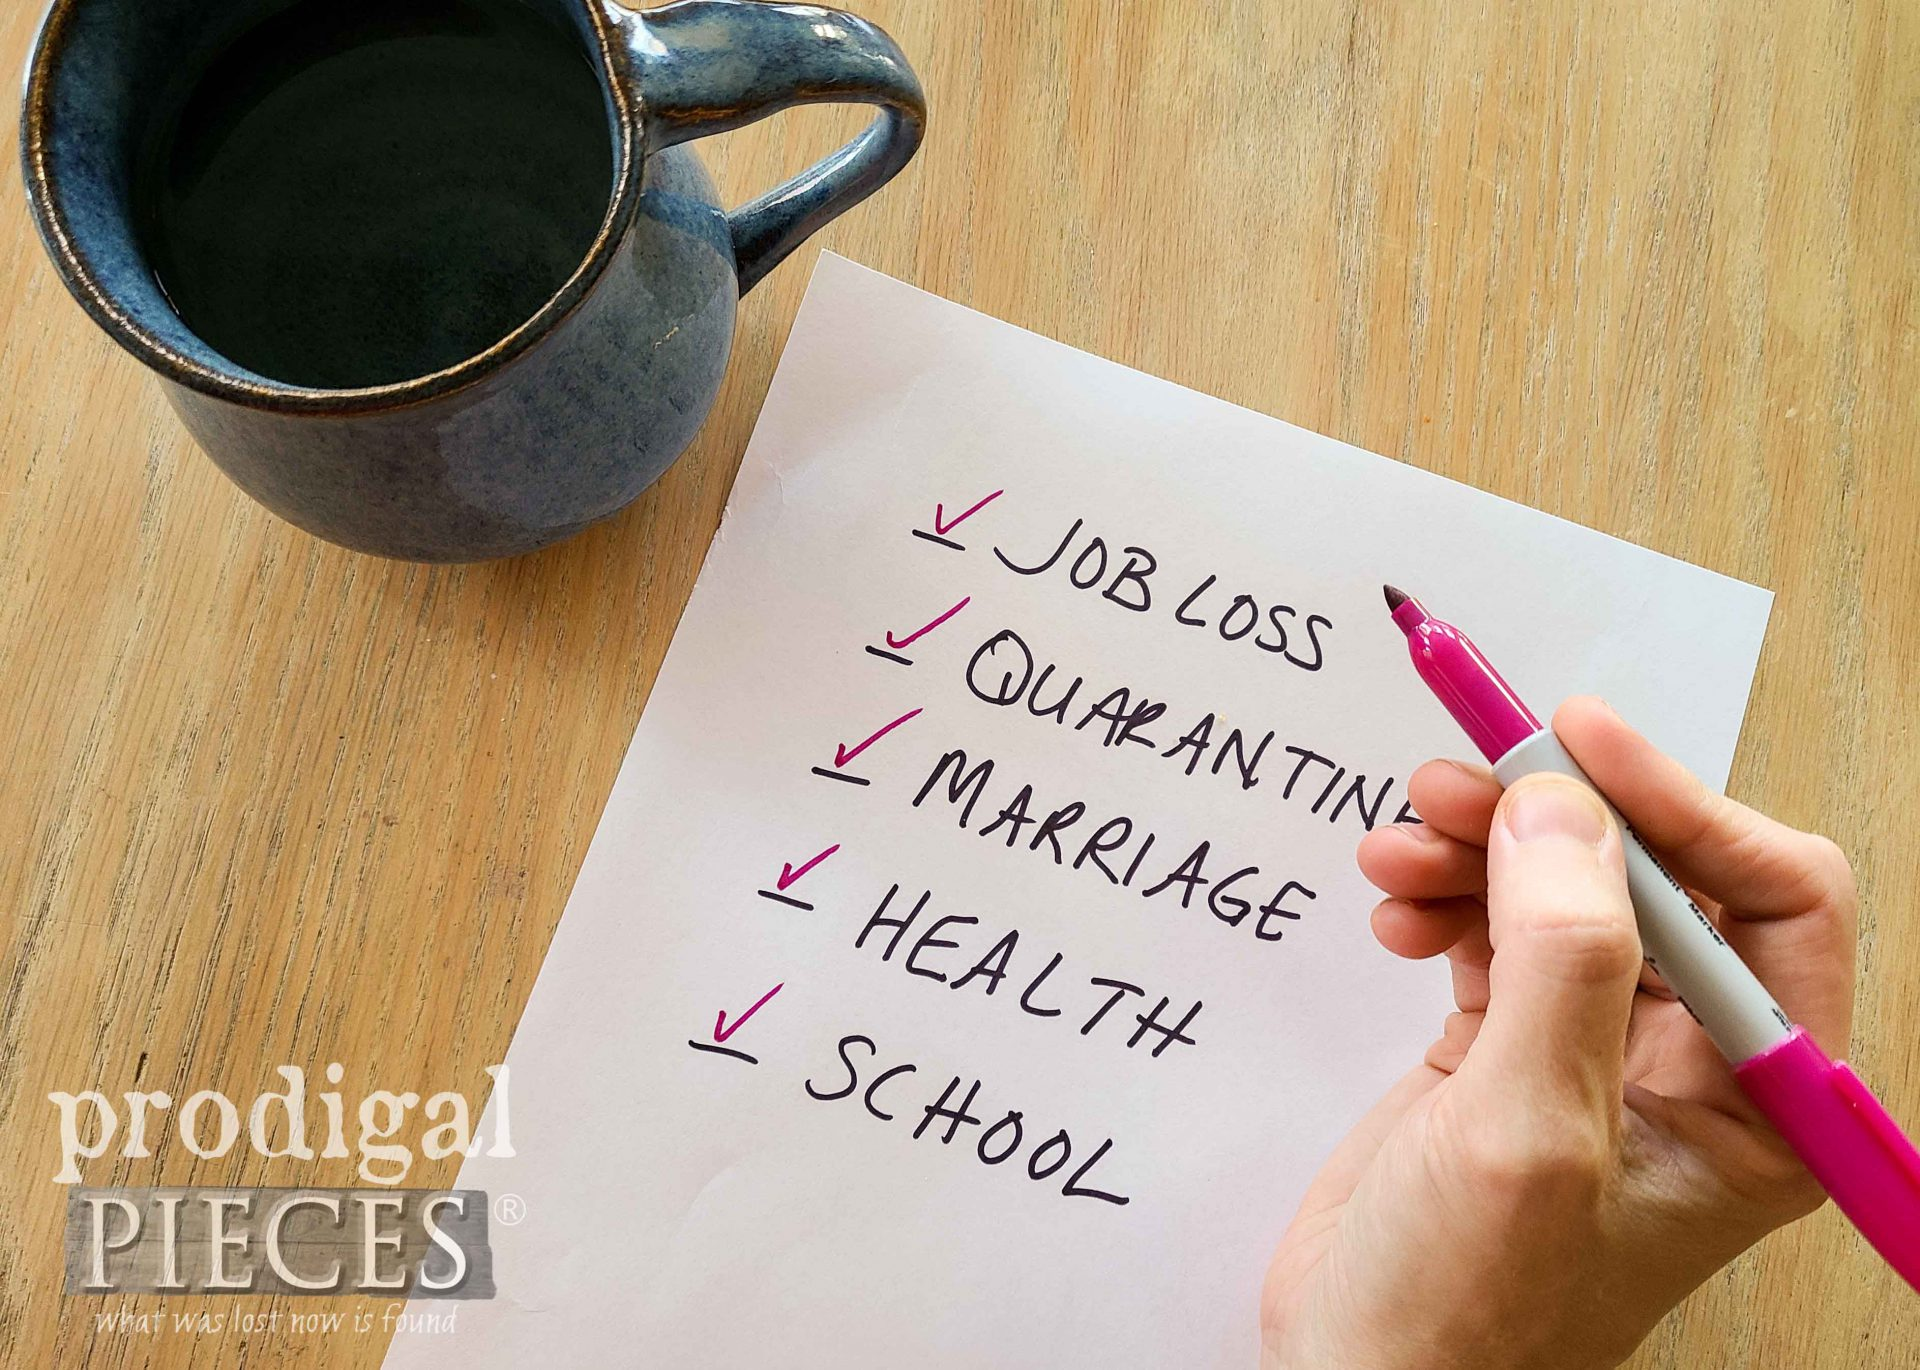 Daily Stress List to Ponder | 5 Ways to Find Thankfulness by Larissa of Prodigal Pieces | prodigalpieces.com #prodigalpieces